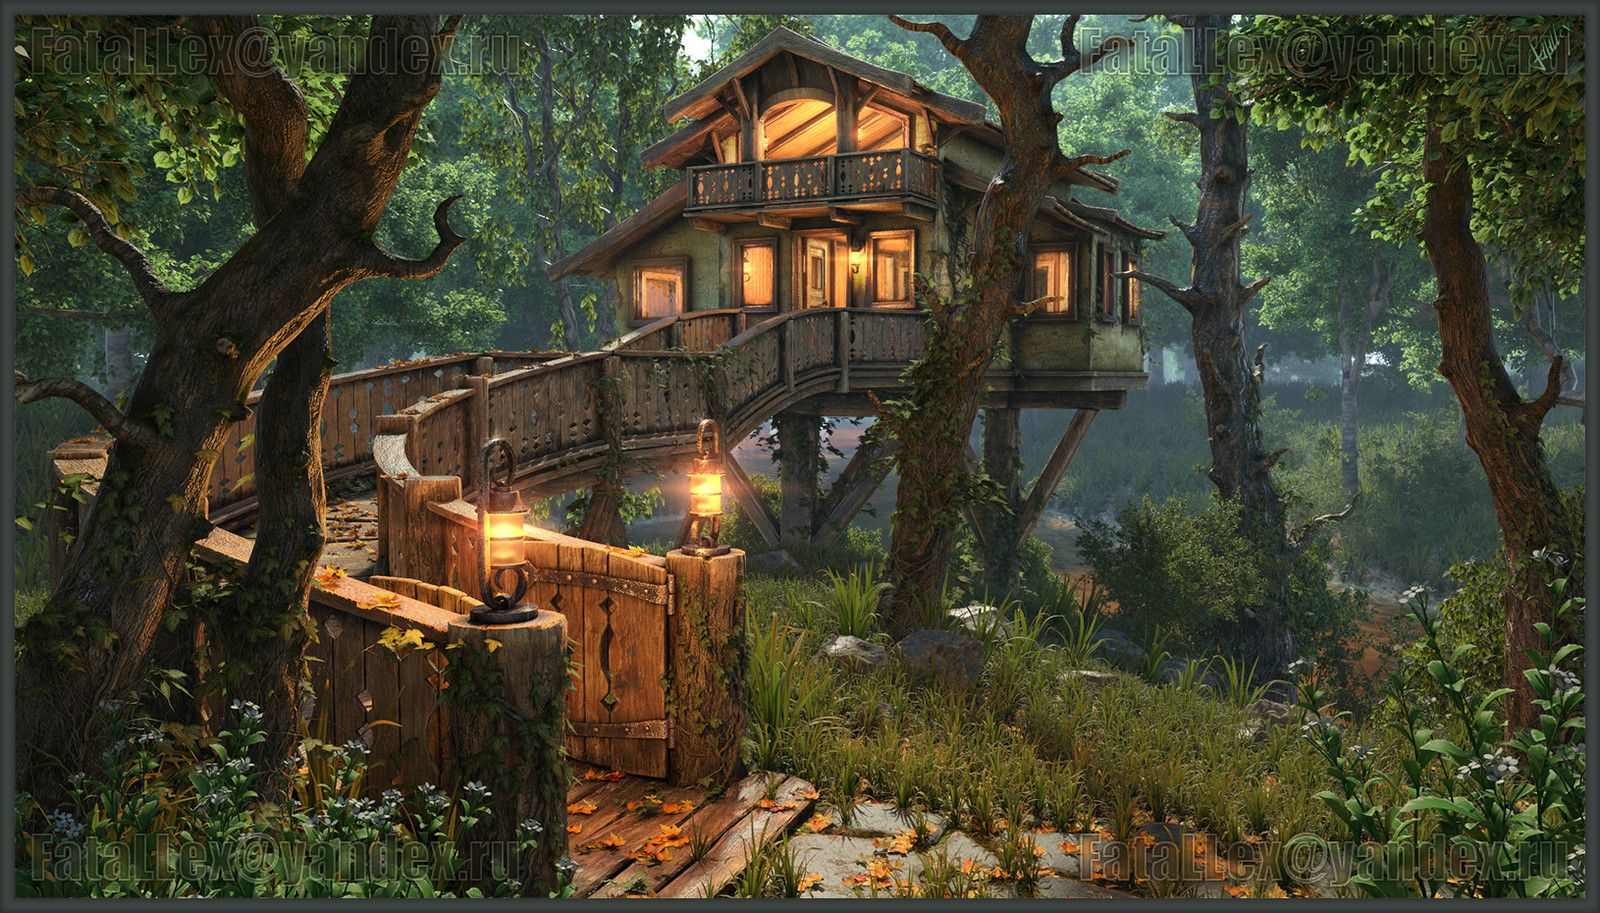 House In The Woods Alexey Gaifutdinov On Artstation At Https